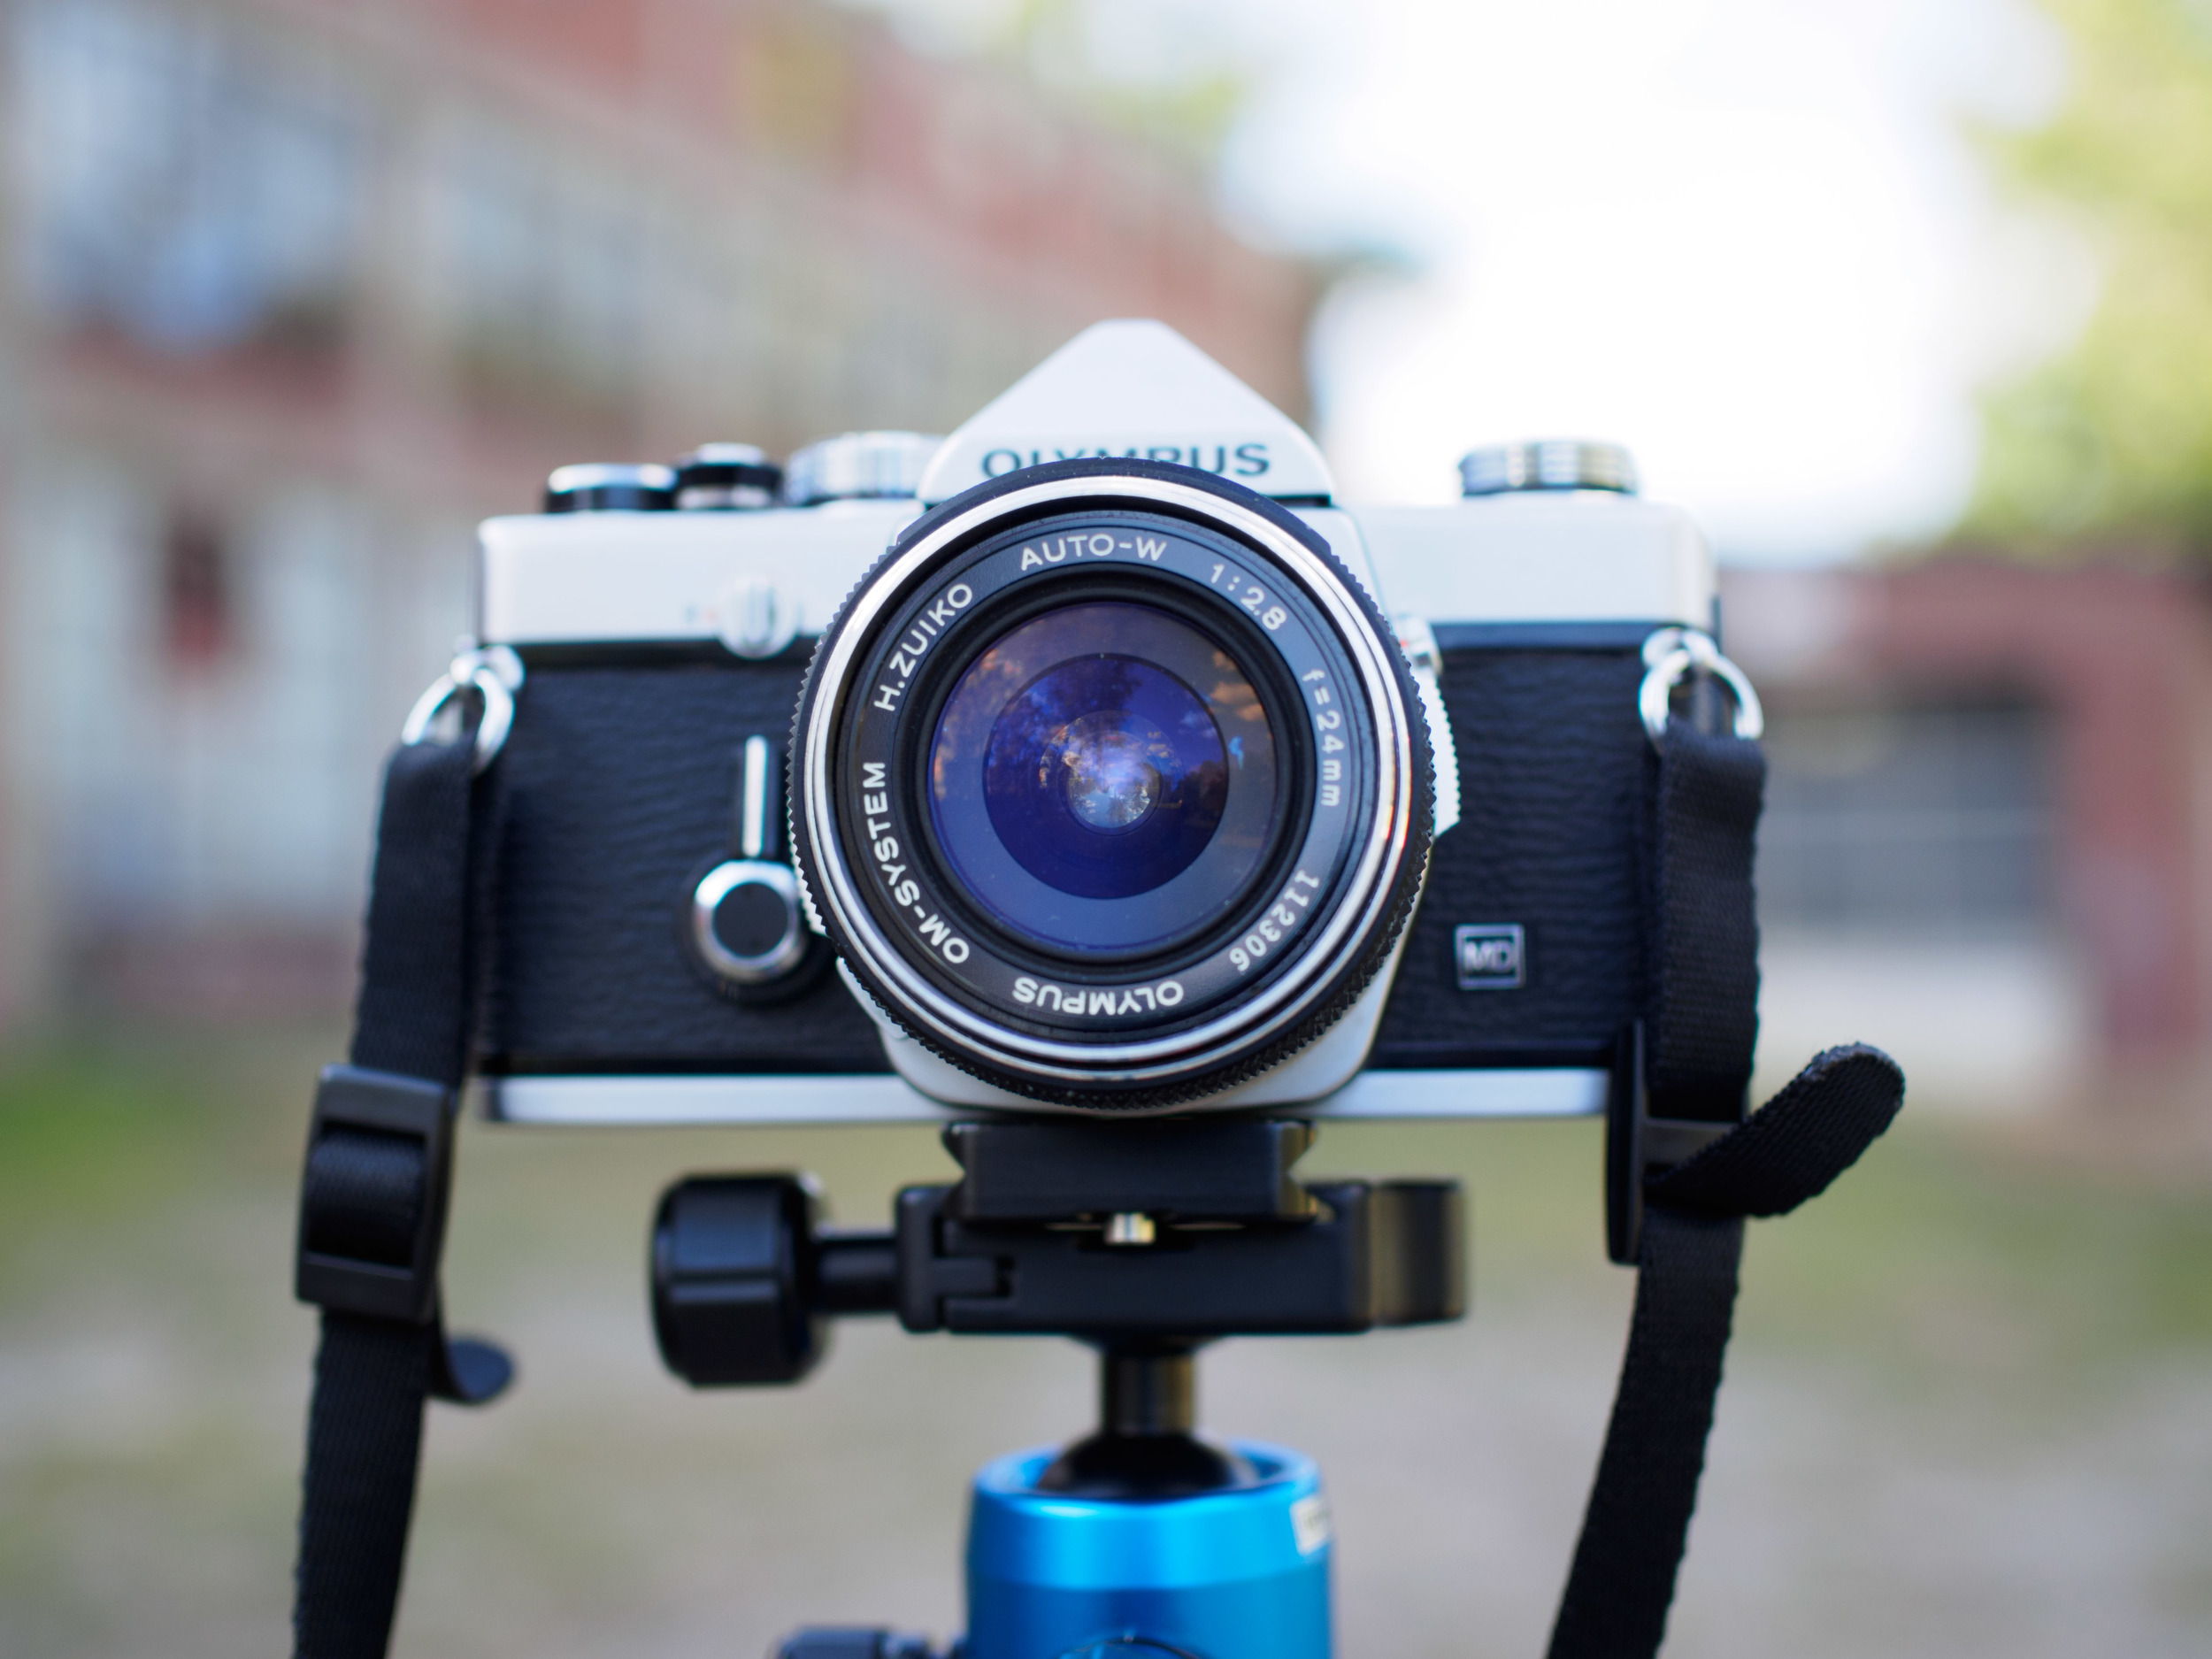 A wonderful walk around lens that works perfectly for an intimate portrait lens, or a versatile street photography lens.